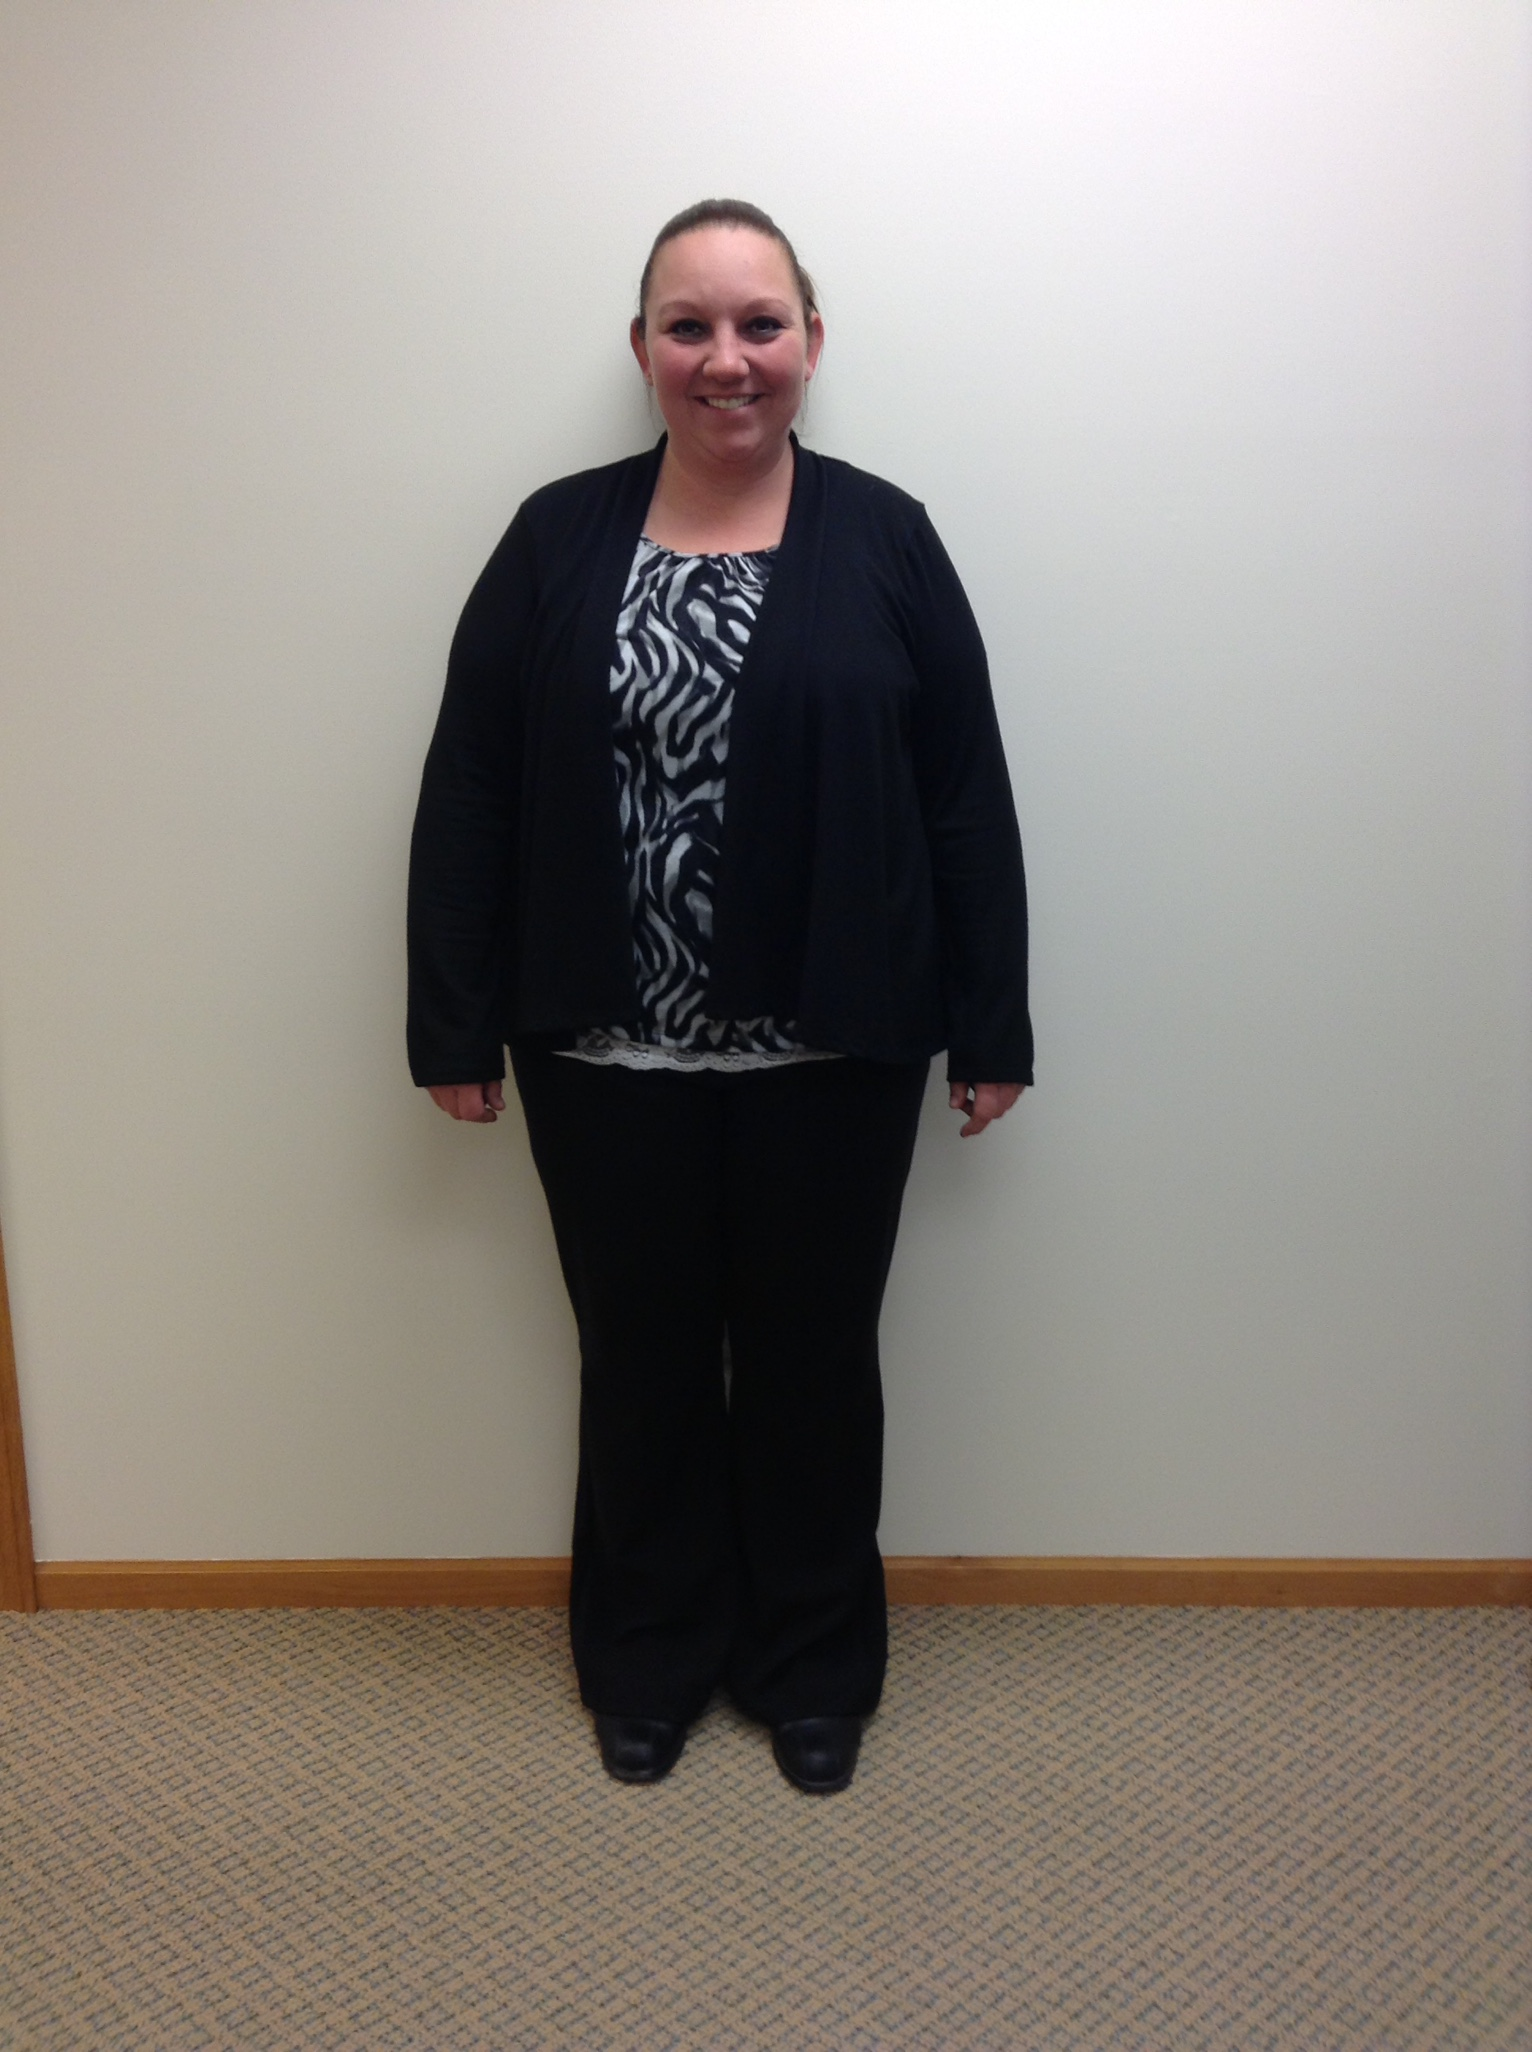 Heather S at the start of her NuYou Weight Loss program.